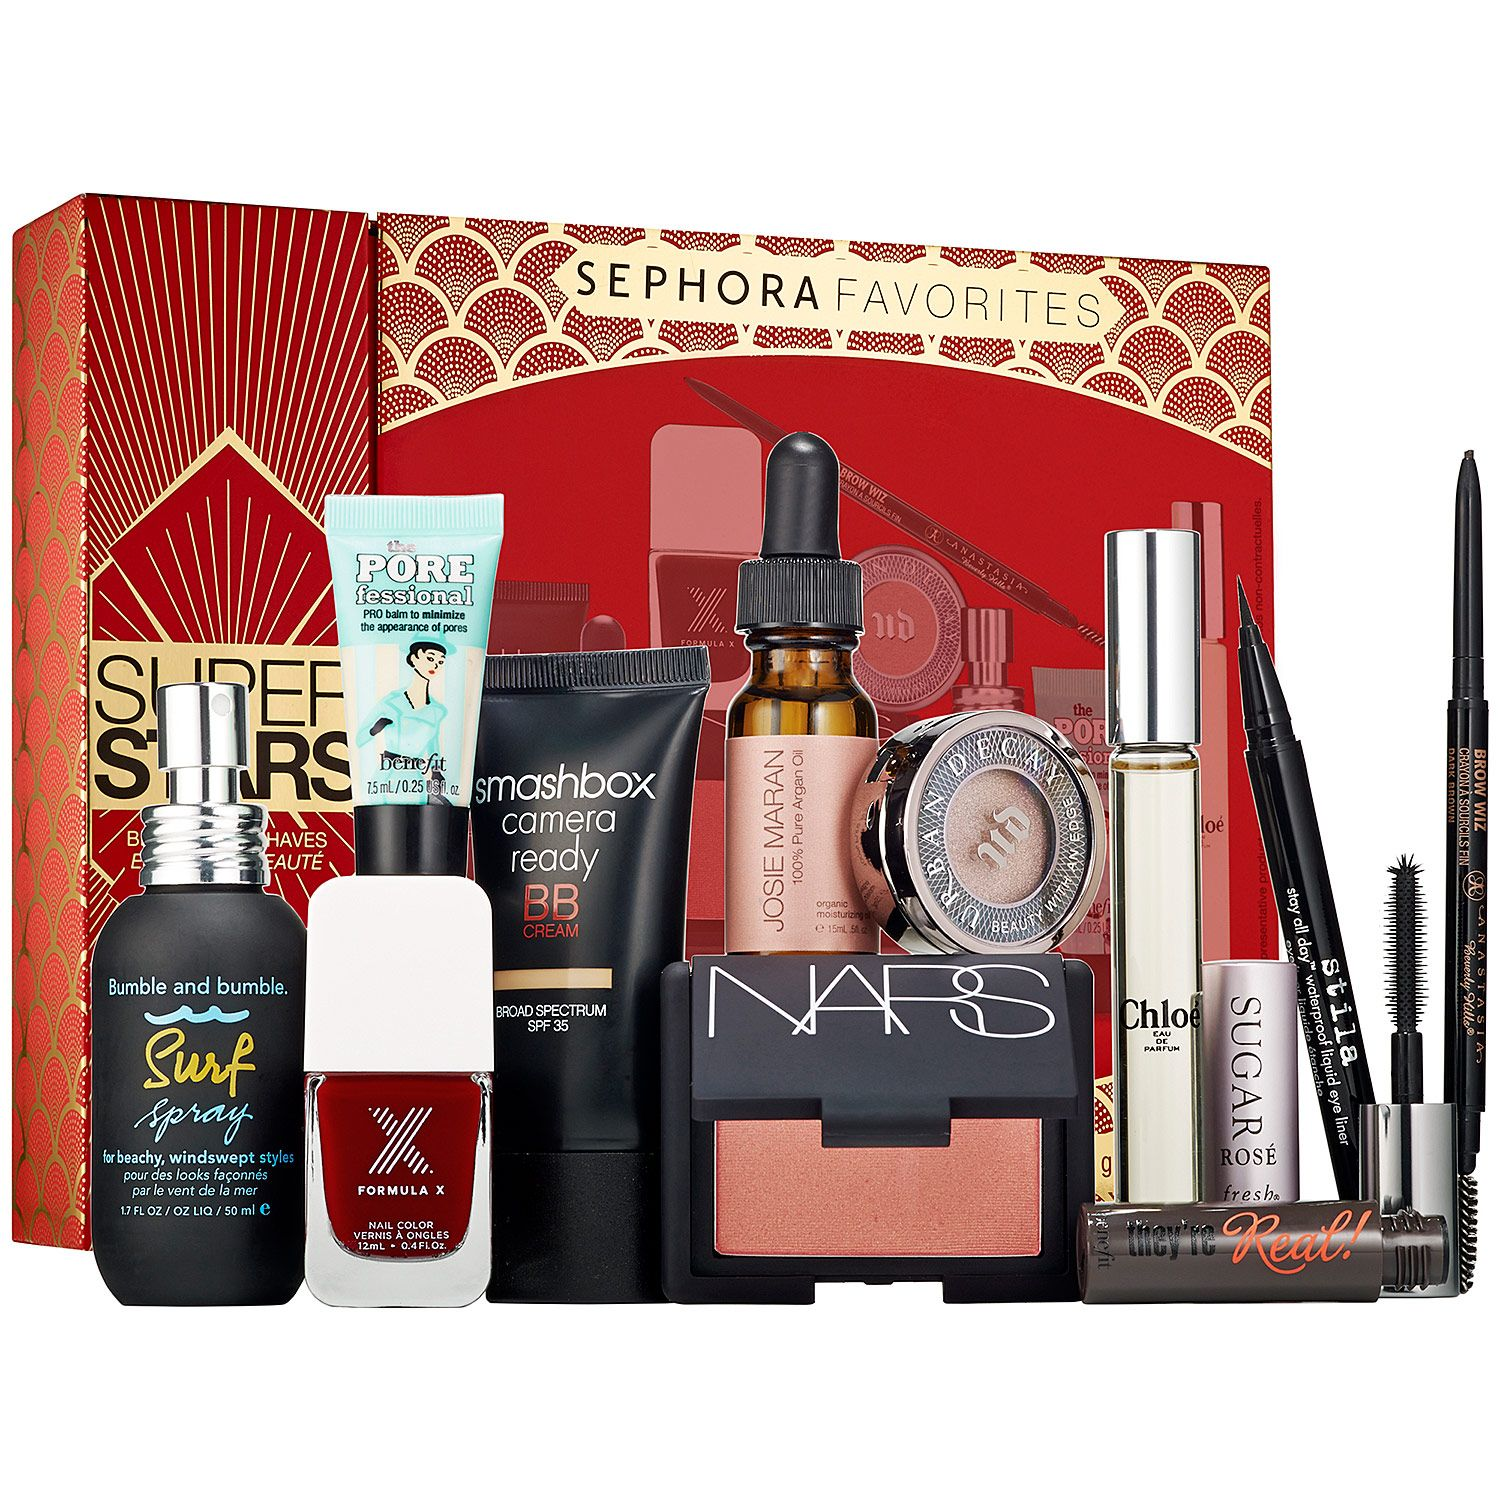 Superstars Sephora Favorites Sephora Sephora